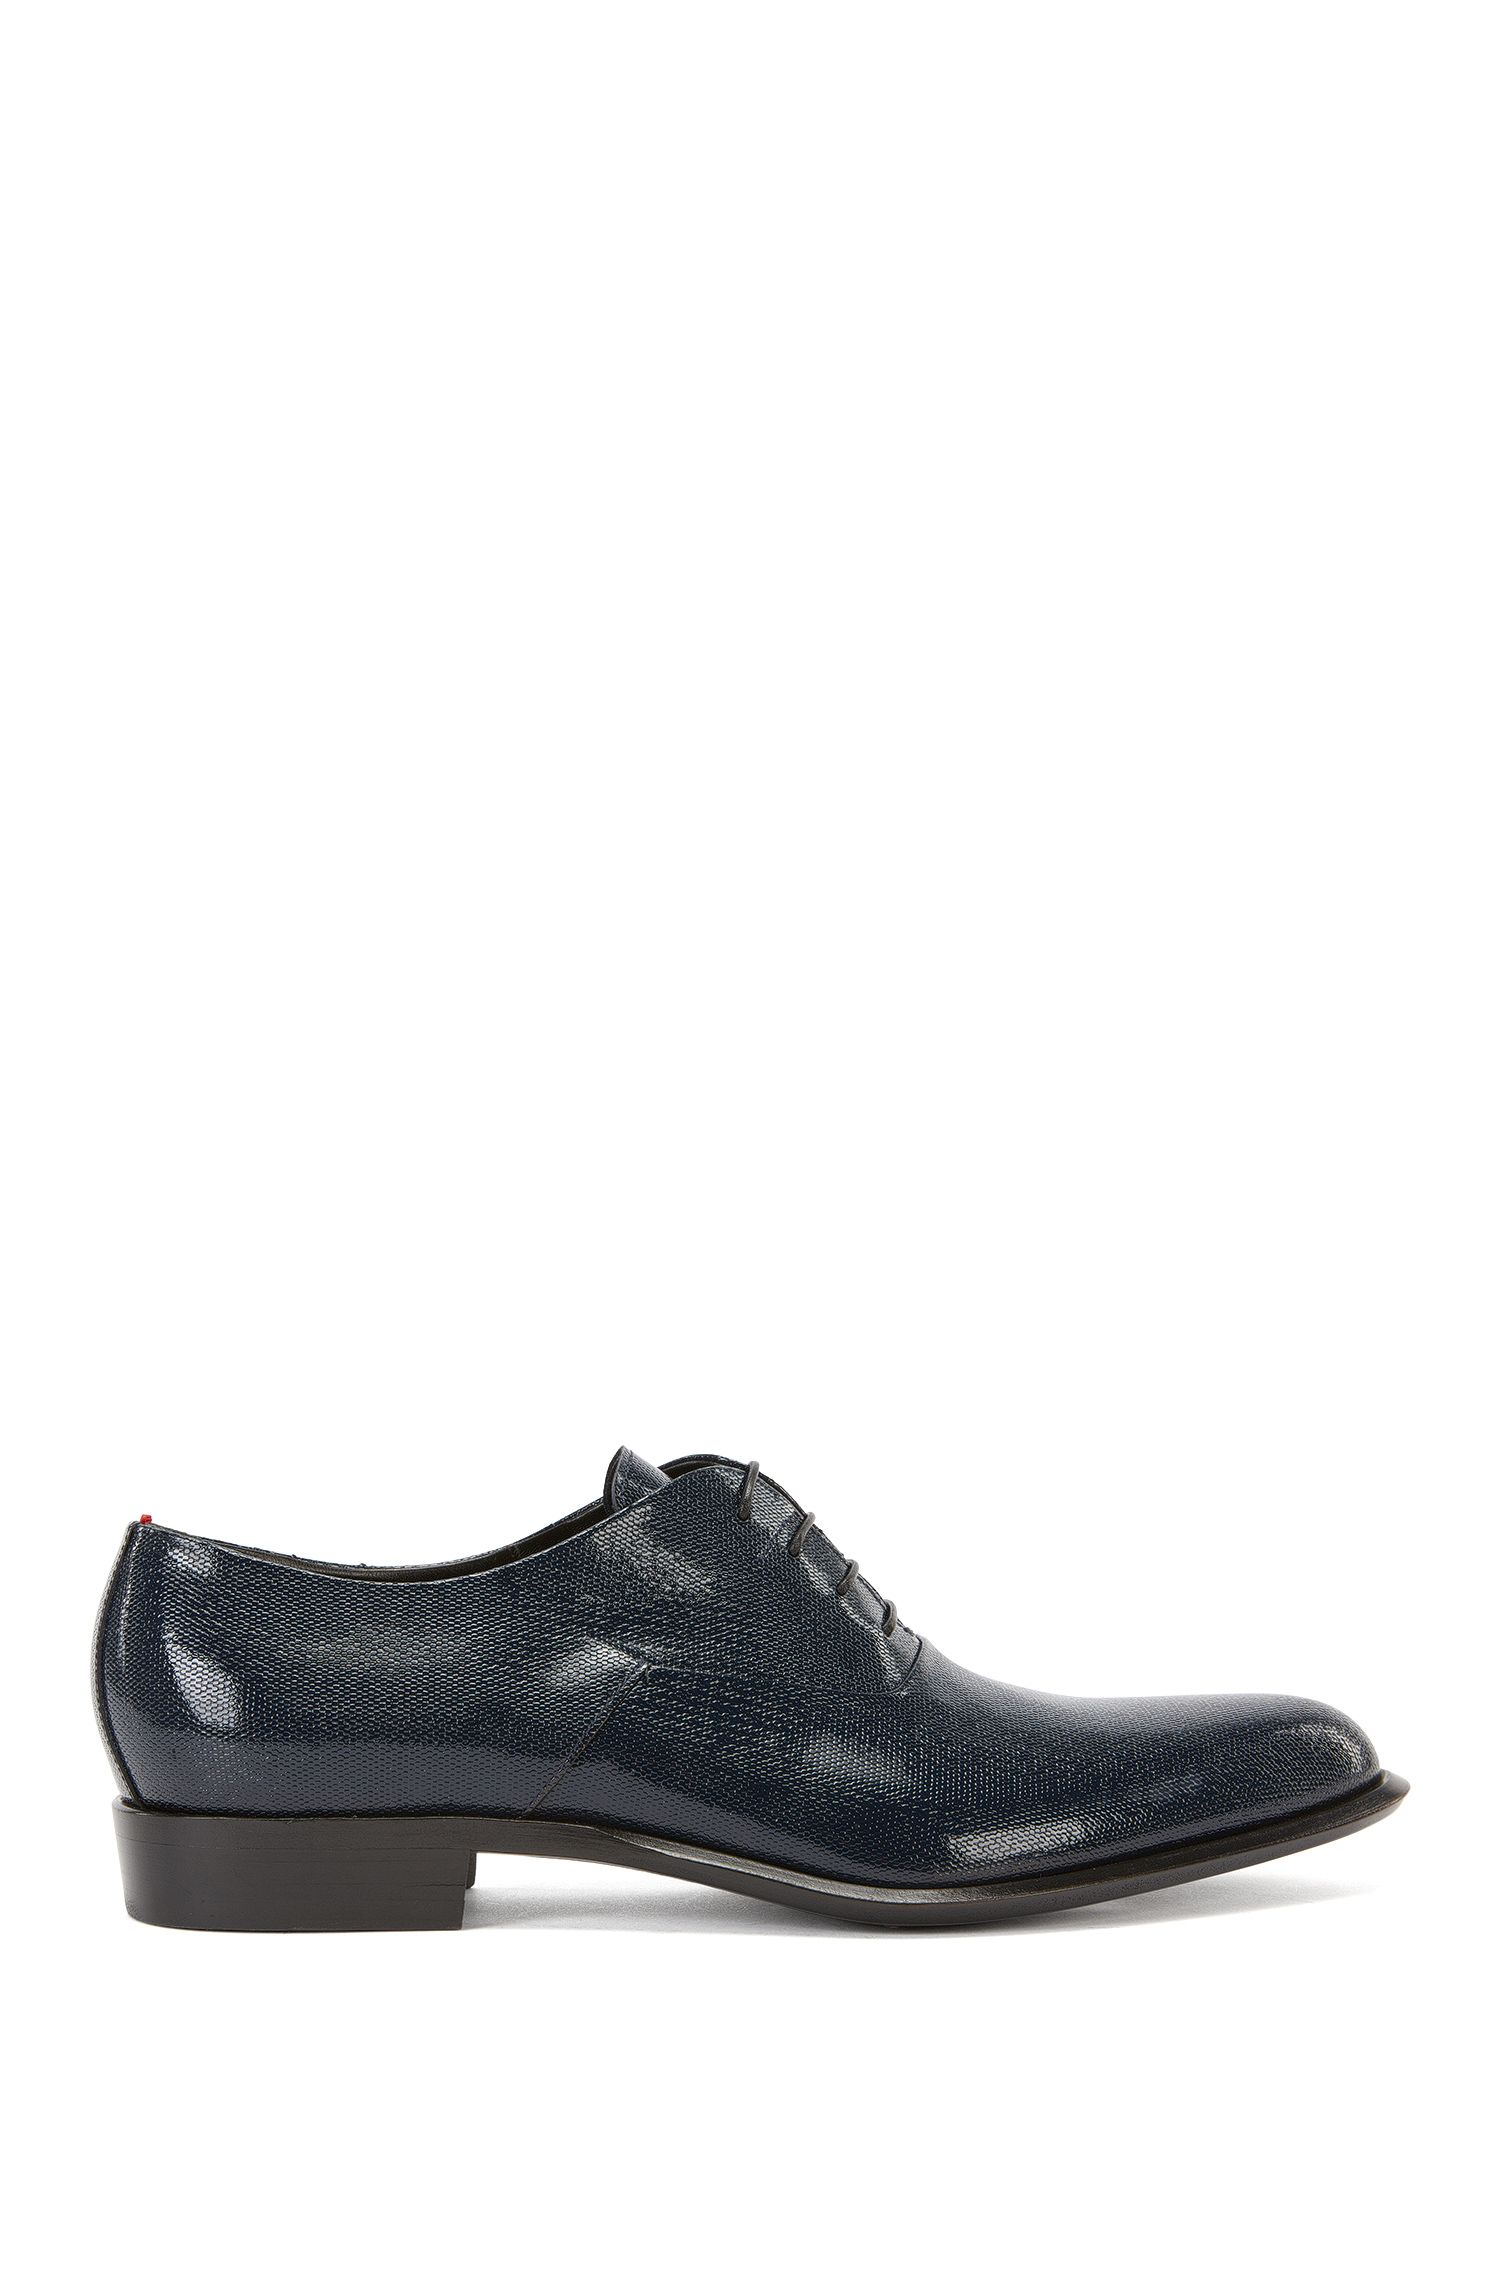 Snakeskin-Embossed Leather Oxford Dress Shoe | Deluxe Oxfr Paper